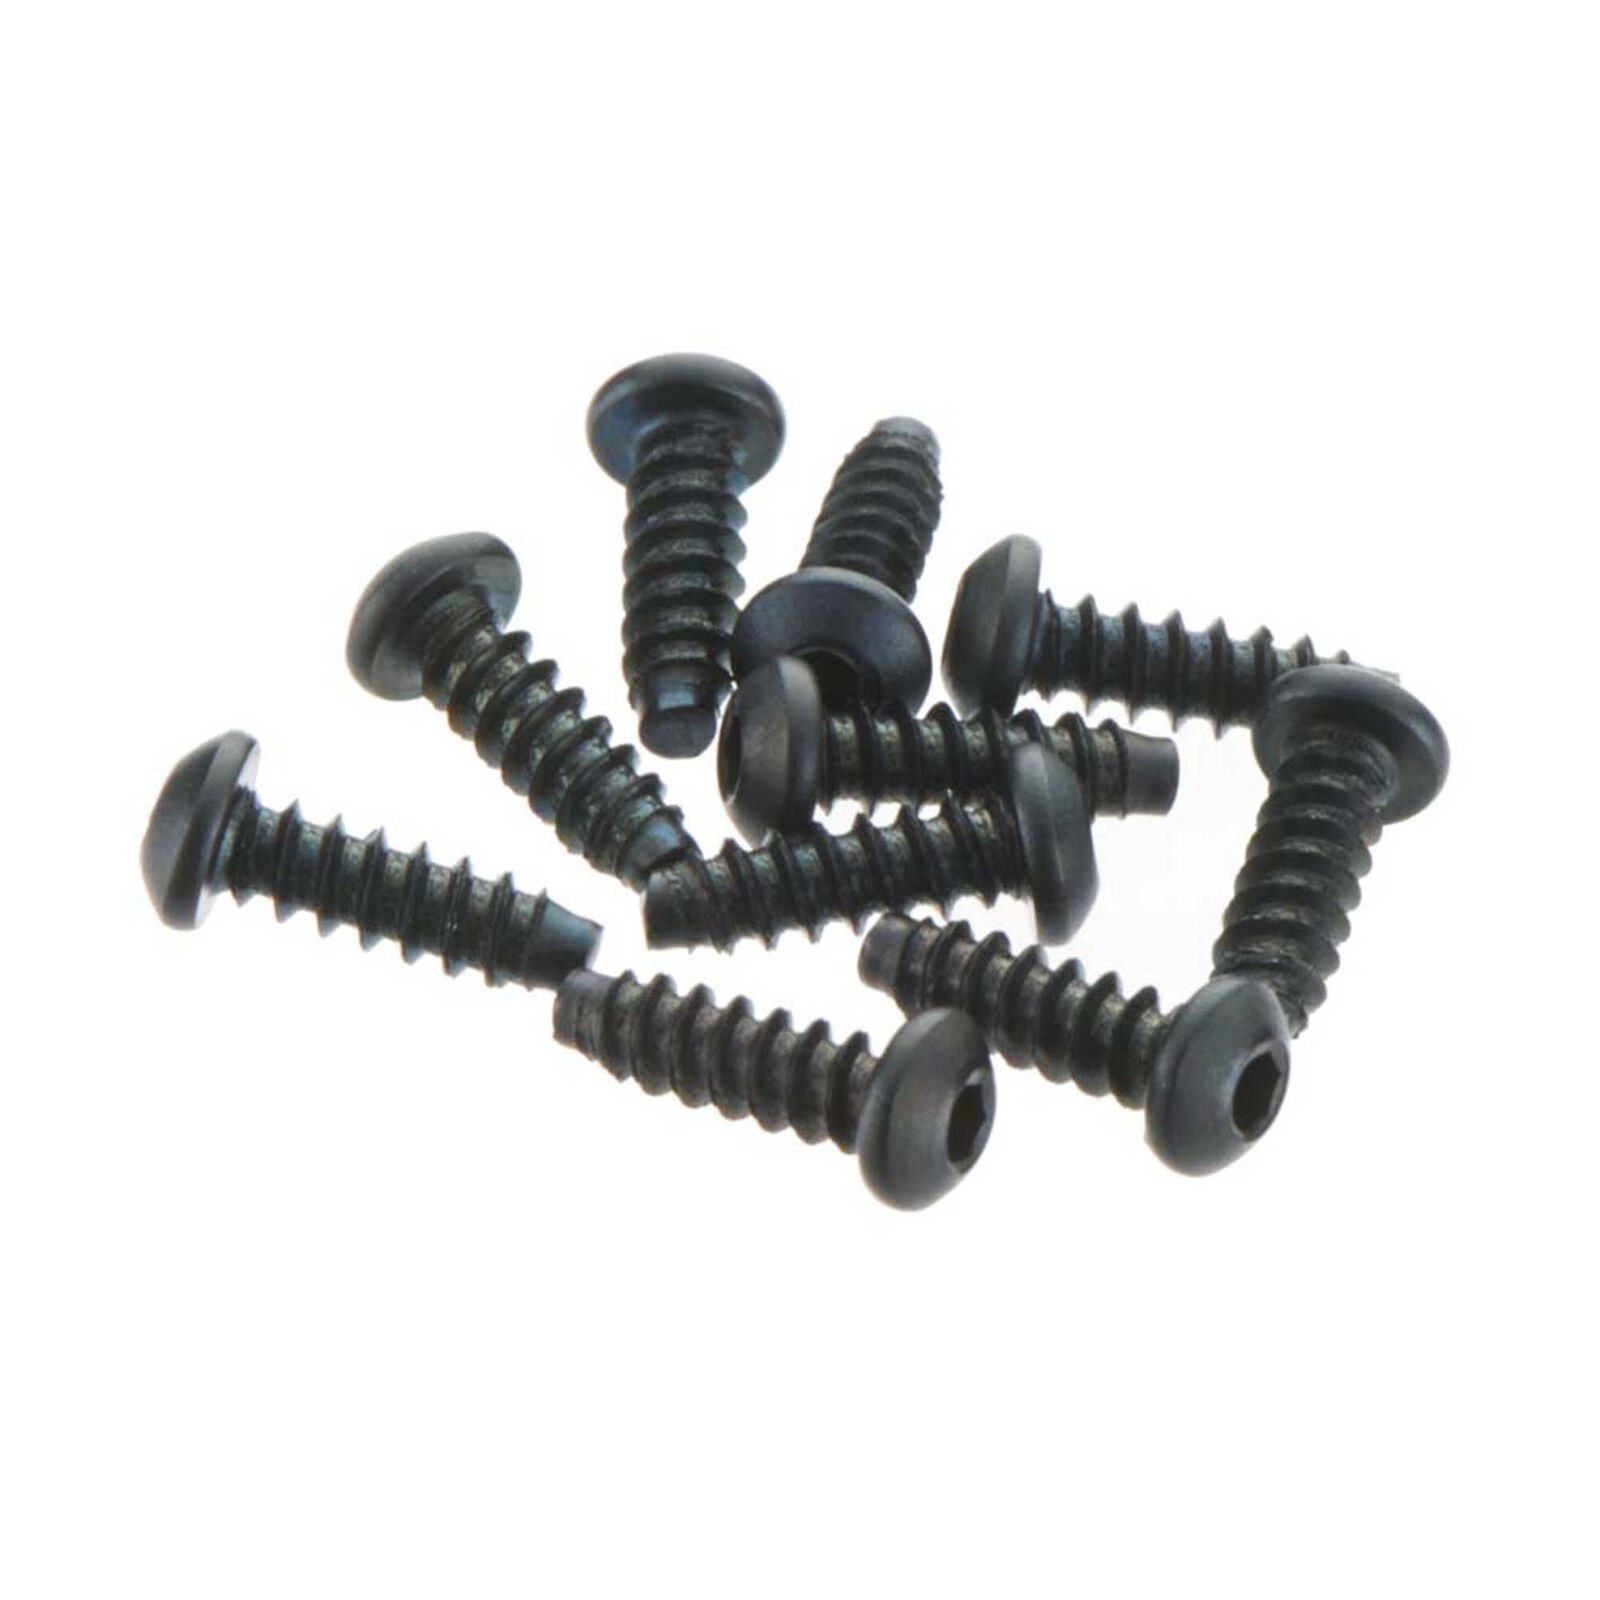 Hex Socket Tapping Button Head 2.6x8mm (10)